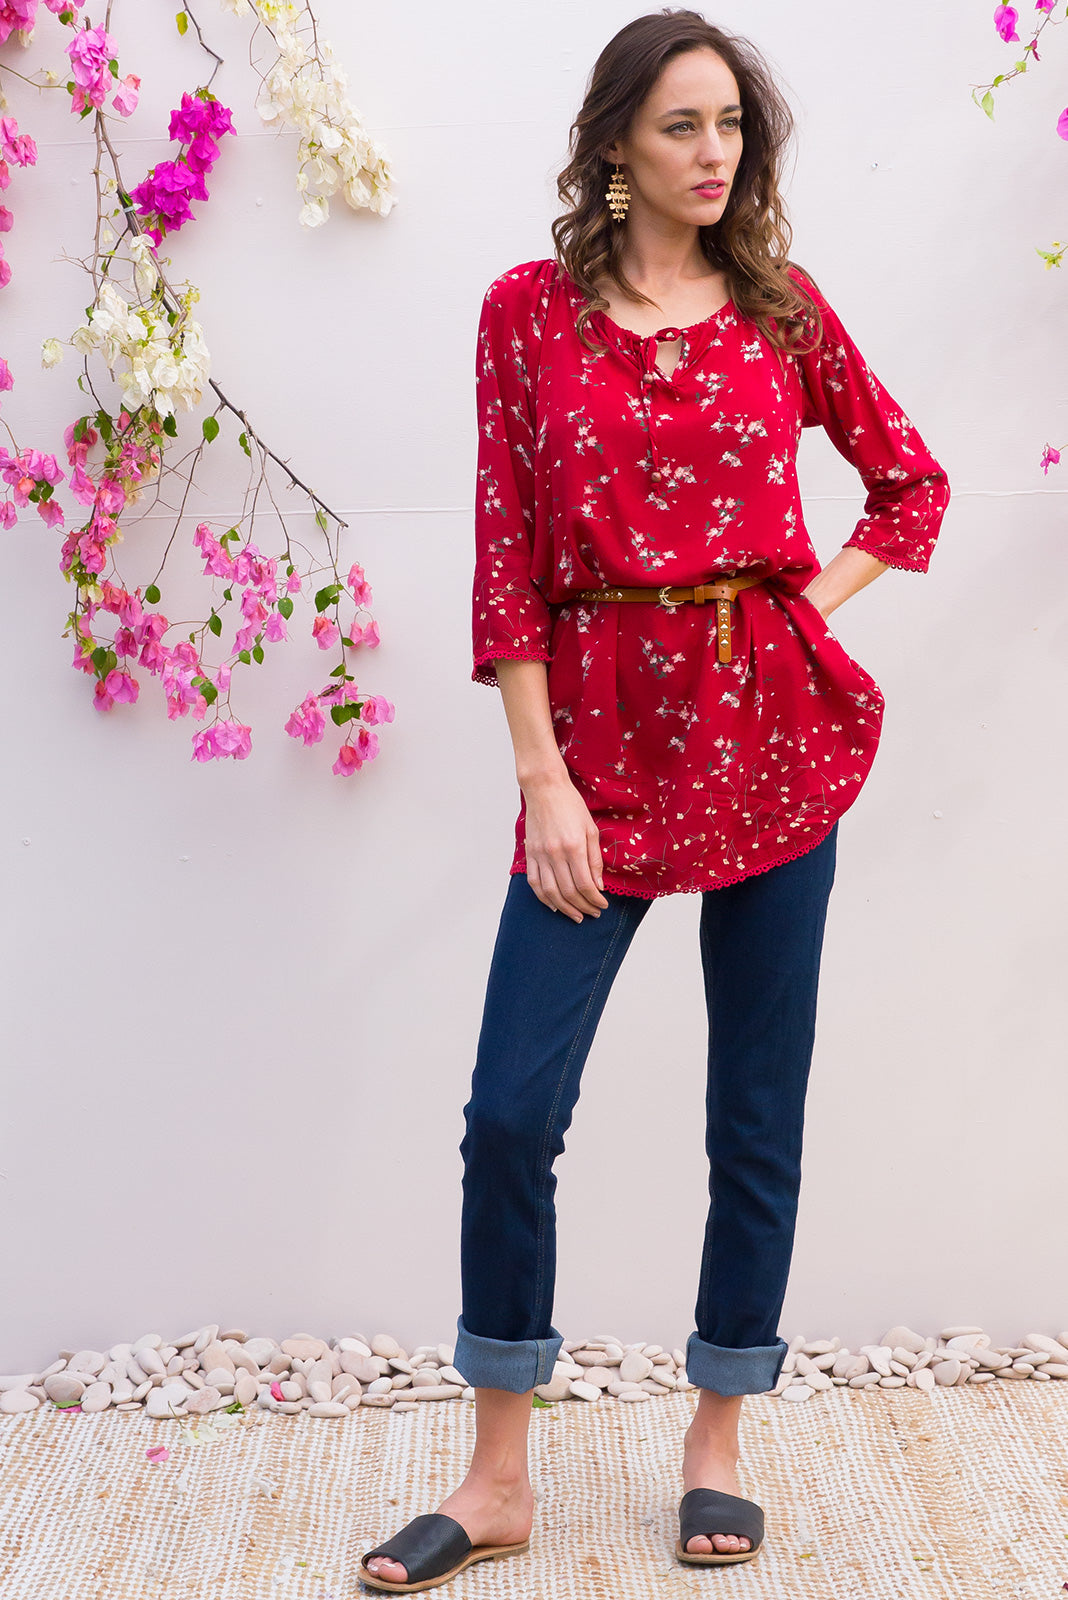 Angie Dee Berry Red Tunic Dress with a elastic drawstring neckline and midi sleeve with cotton lace trim on the sleeve and hem in a delicate red floral print on smooth soft rayon